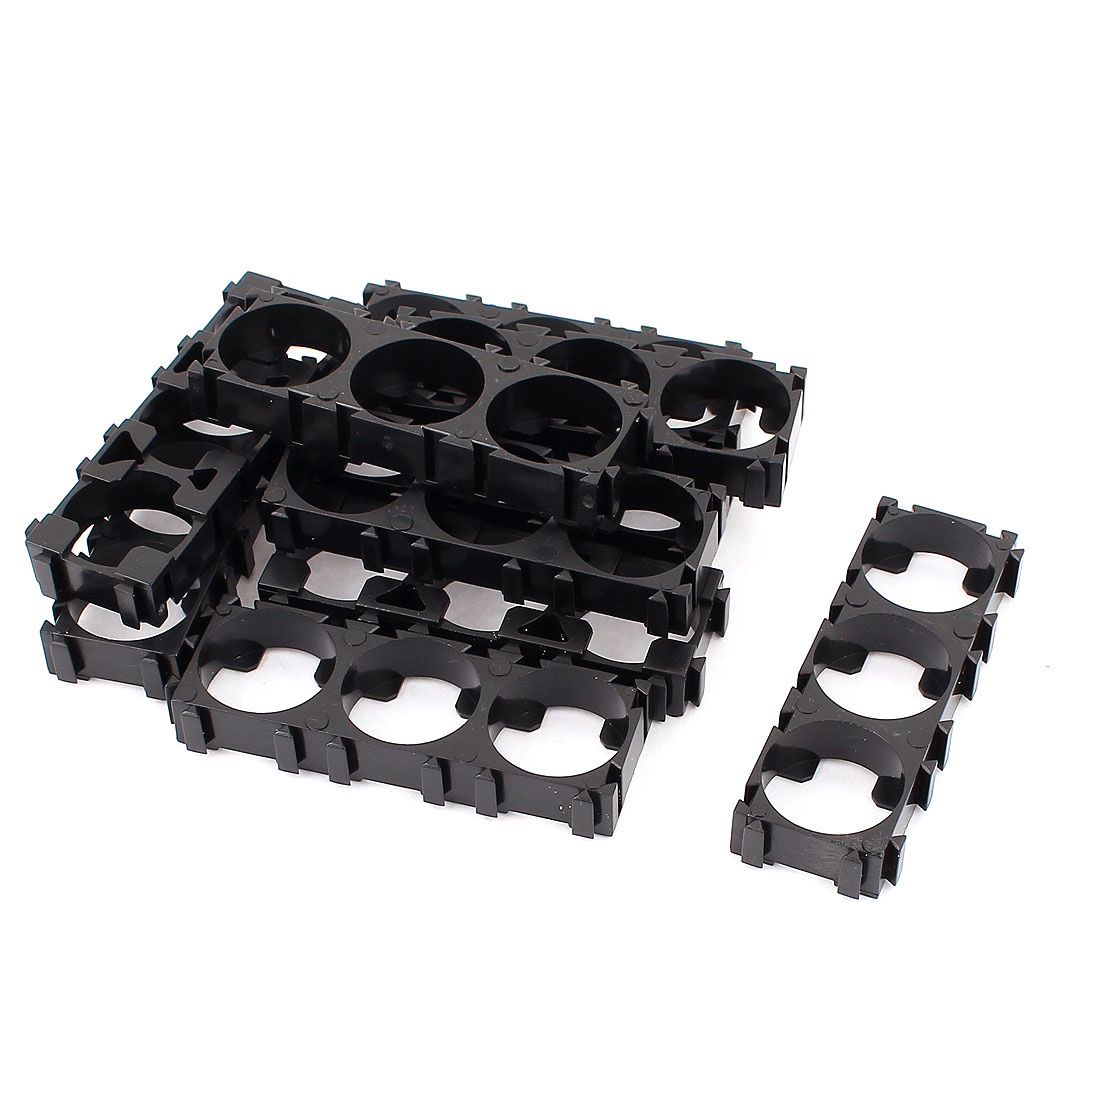 10 Pcs 18650 Lithium Battery Triple Holder Bracket for DIY Battery Pack